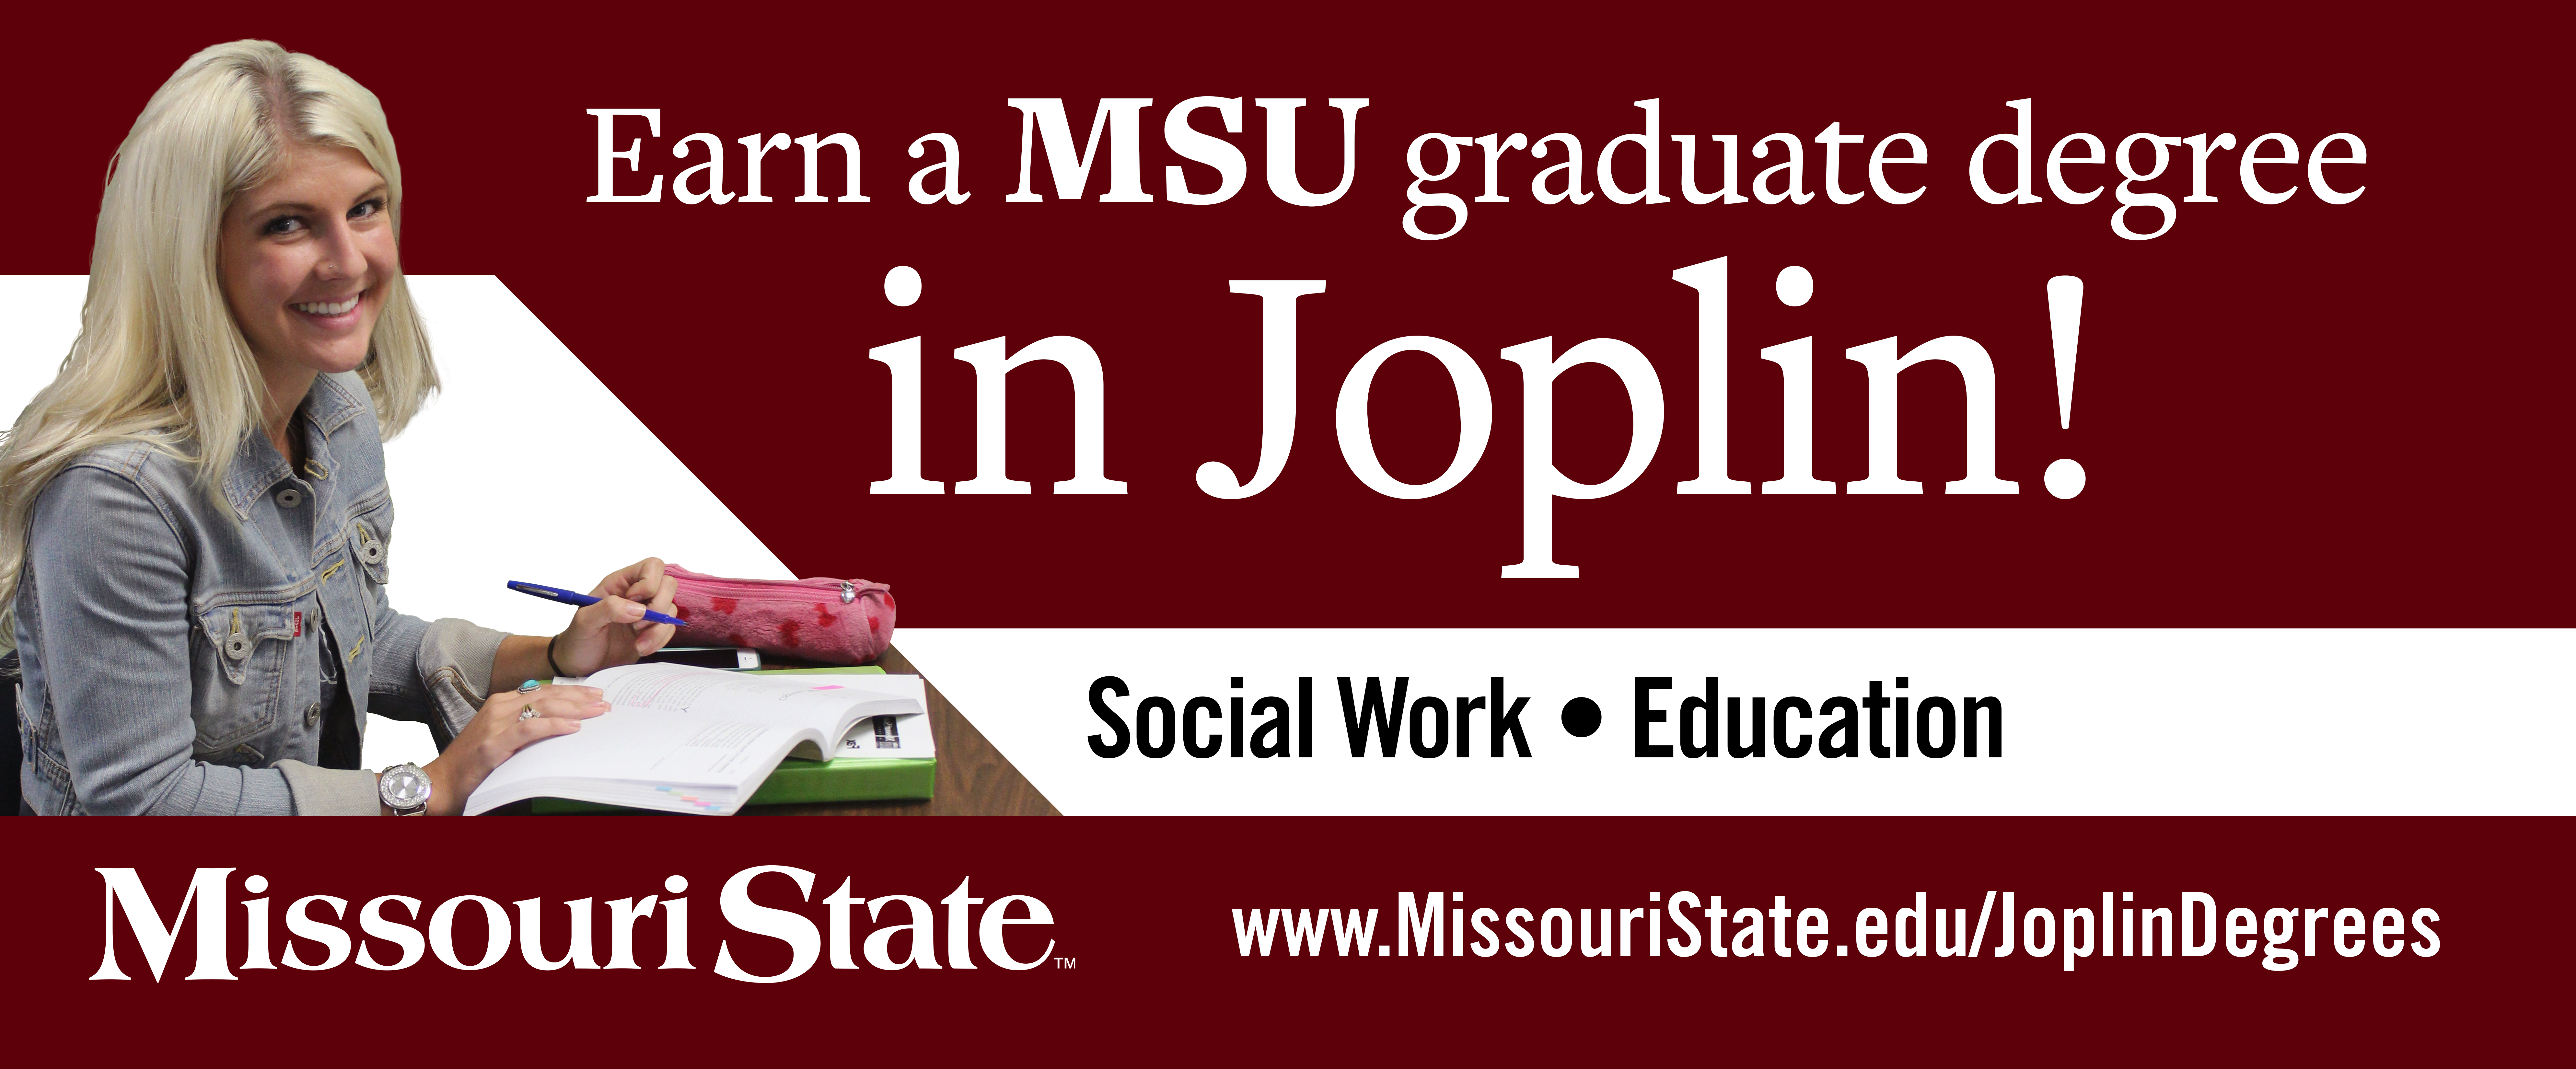 Master of Social Work Spring 2017 Campaign